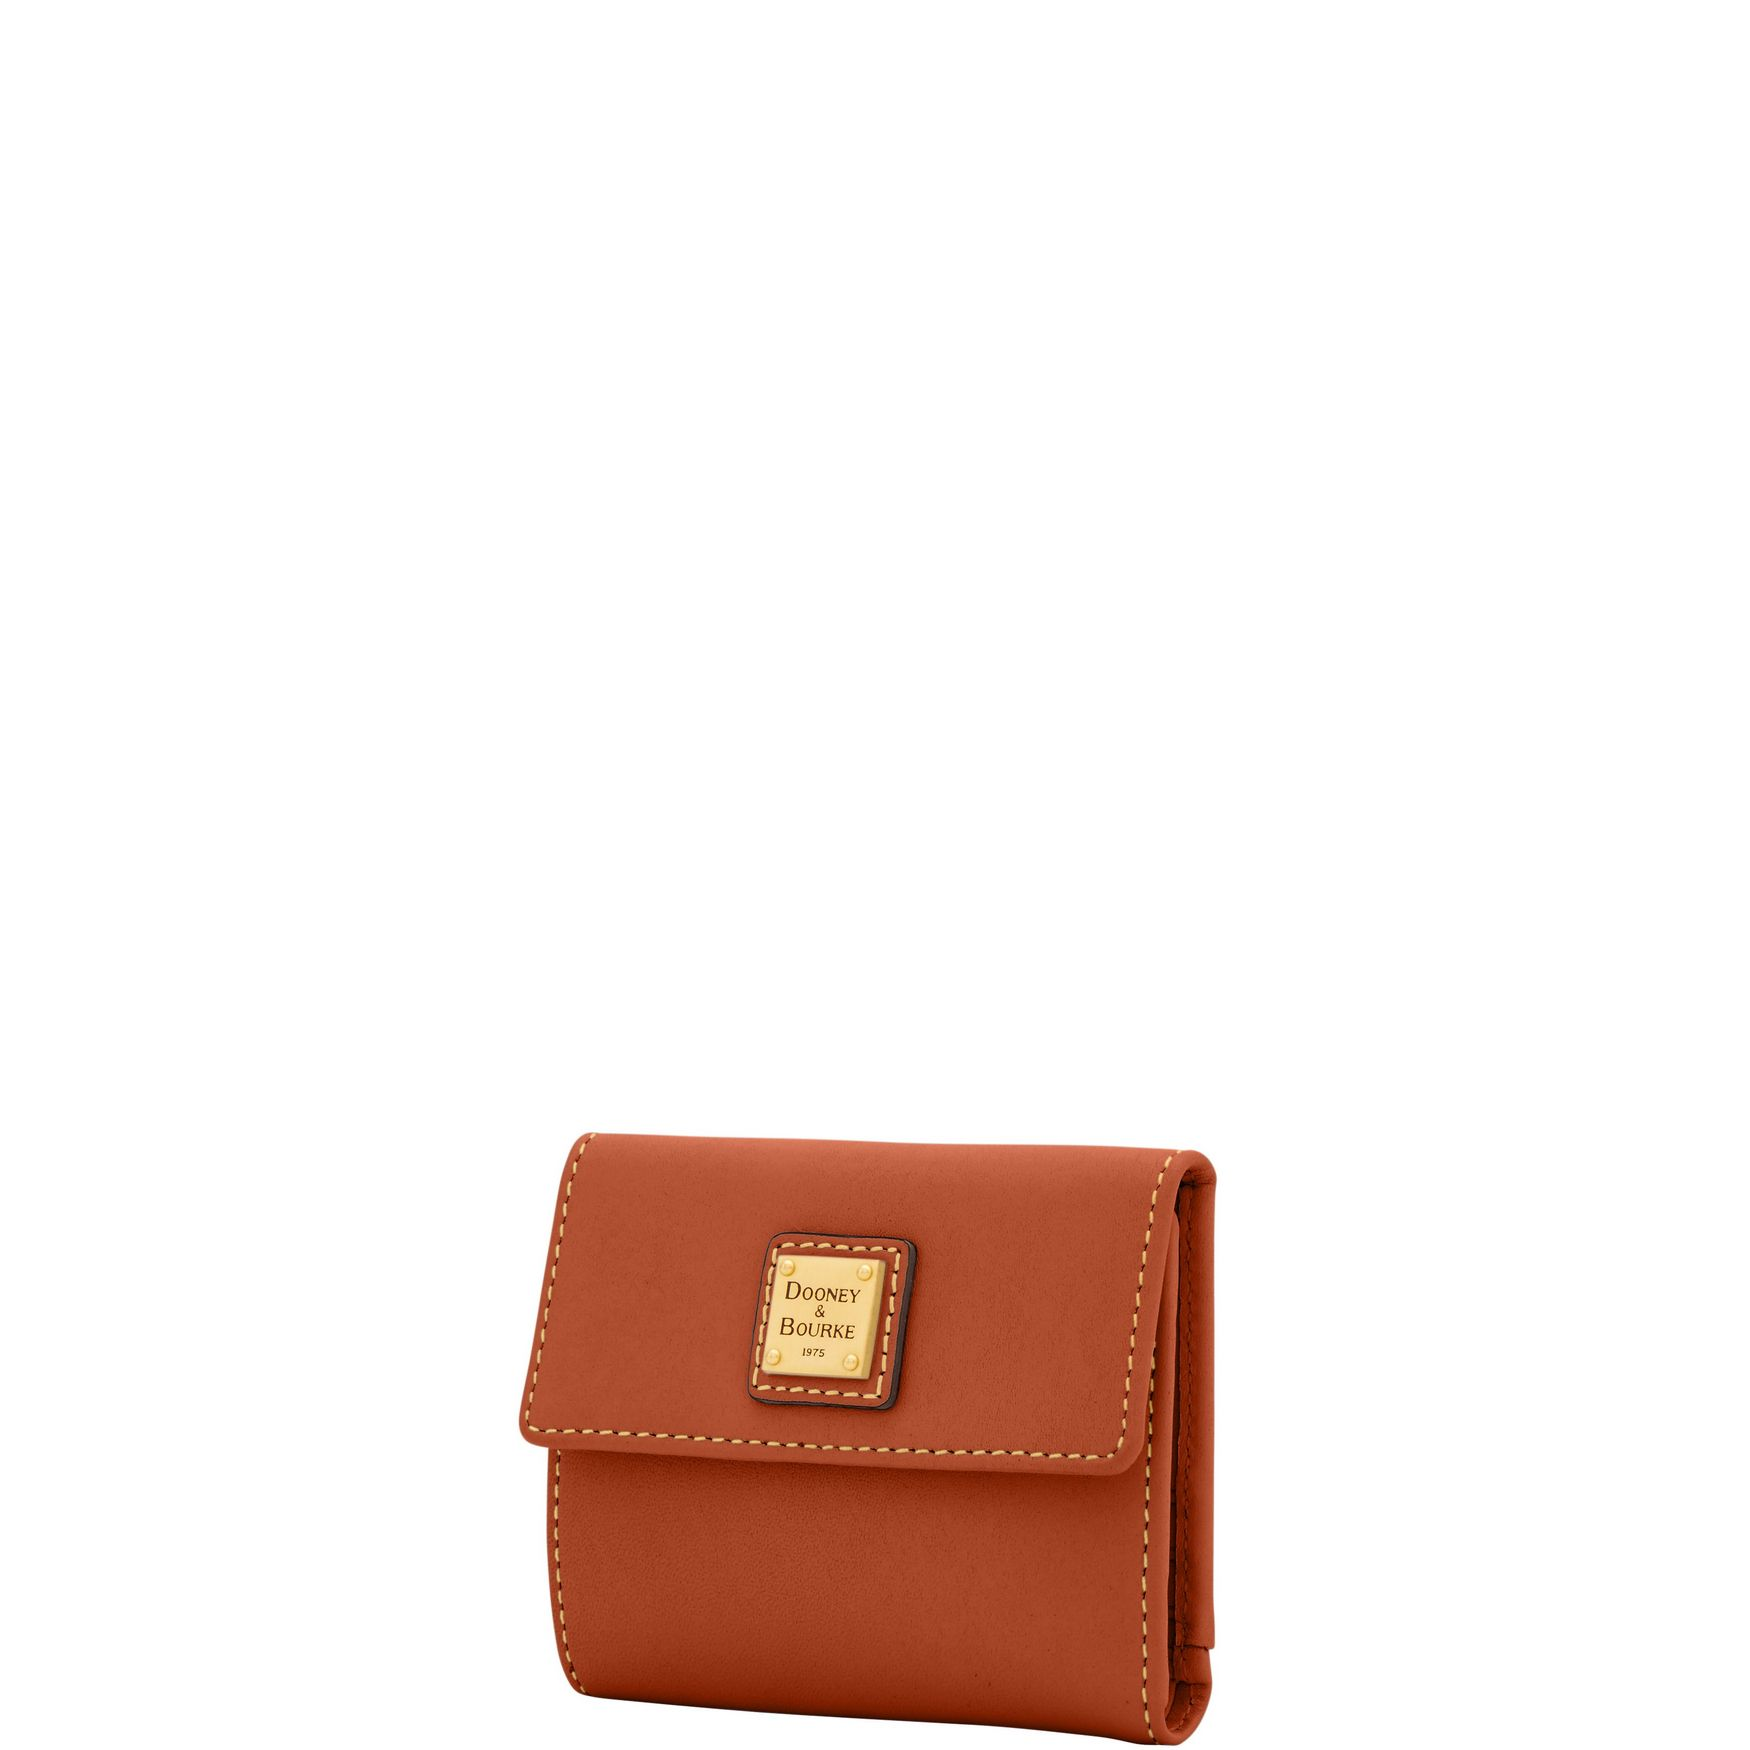 Dooney-amp-Bourke-Emerson-Small-Flap-Wallet thumbnail 32